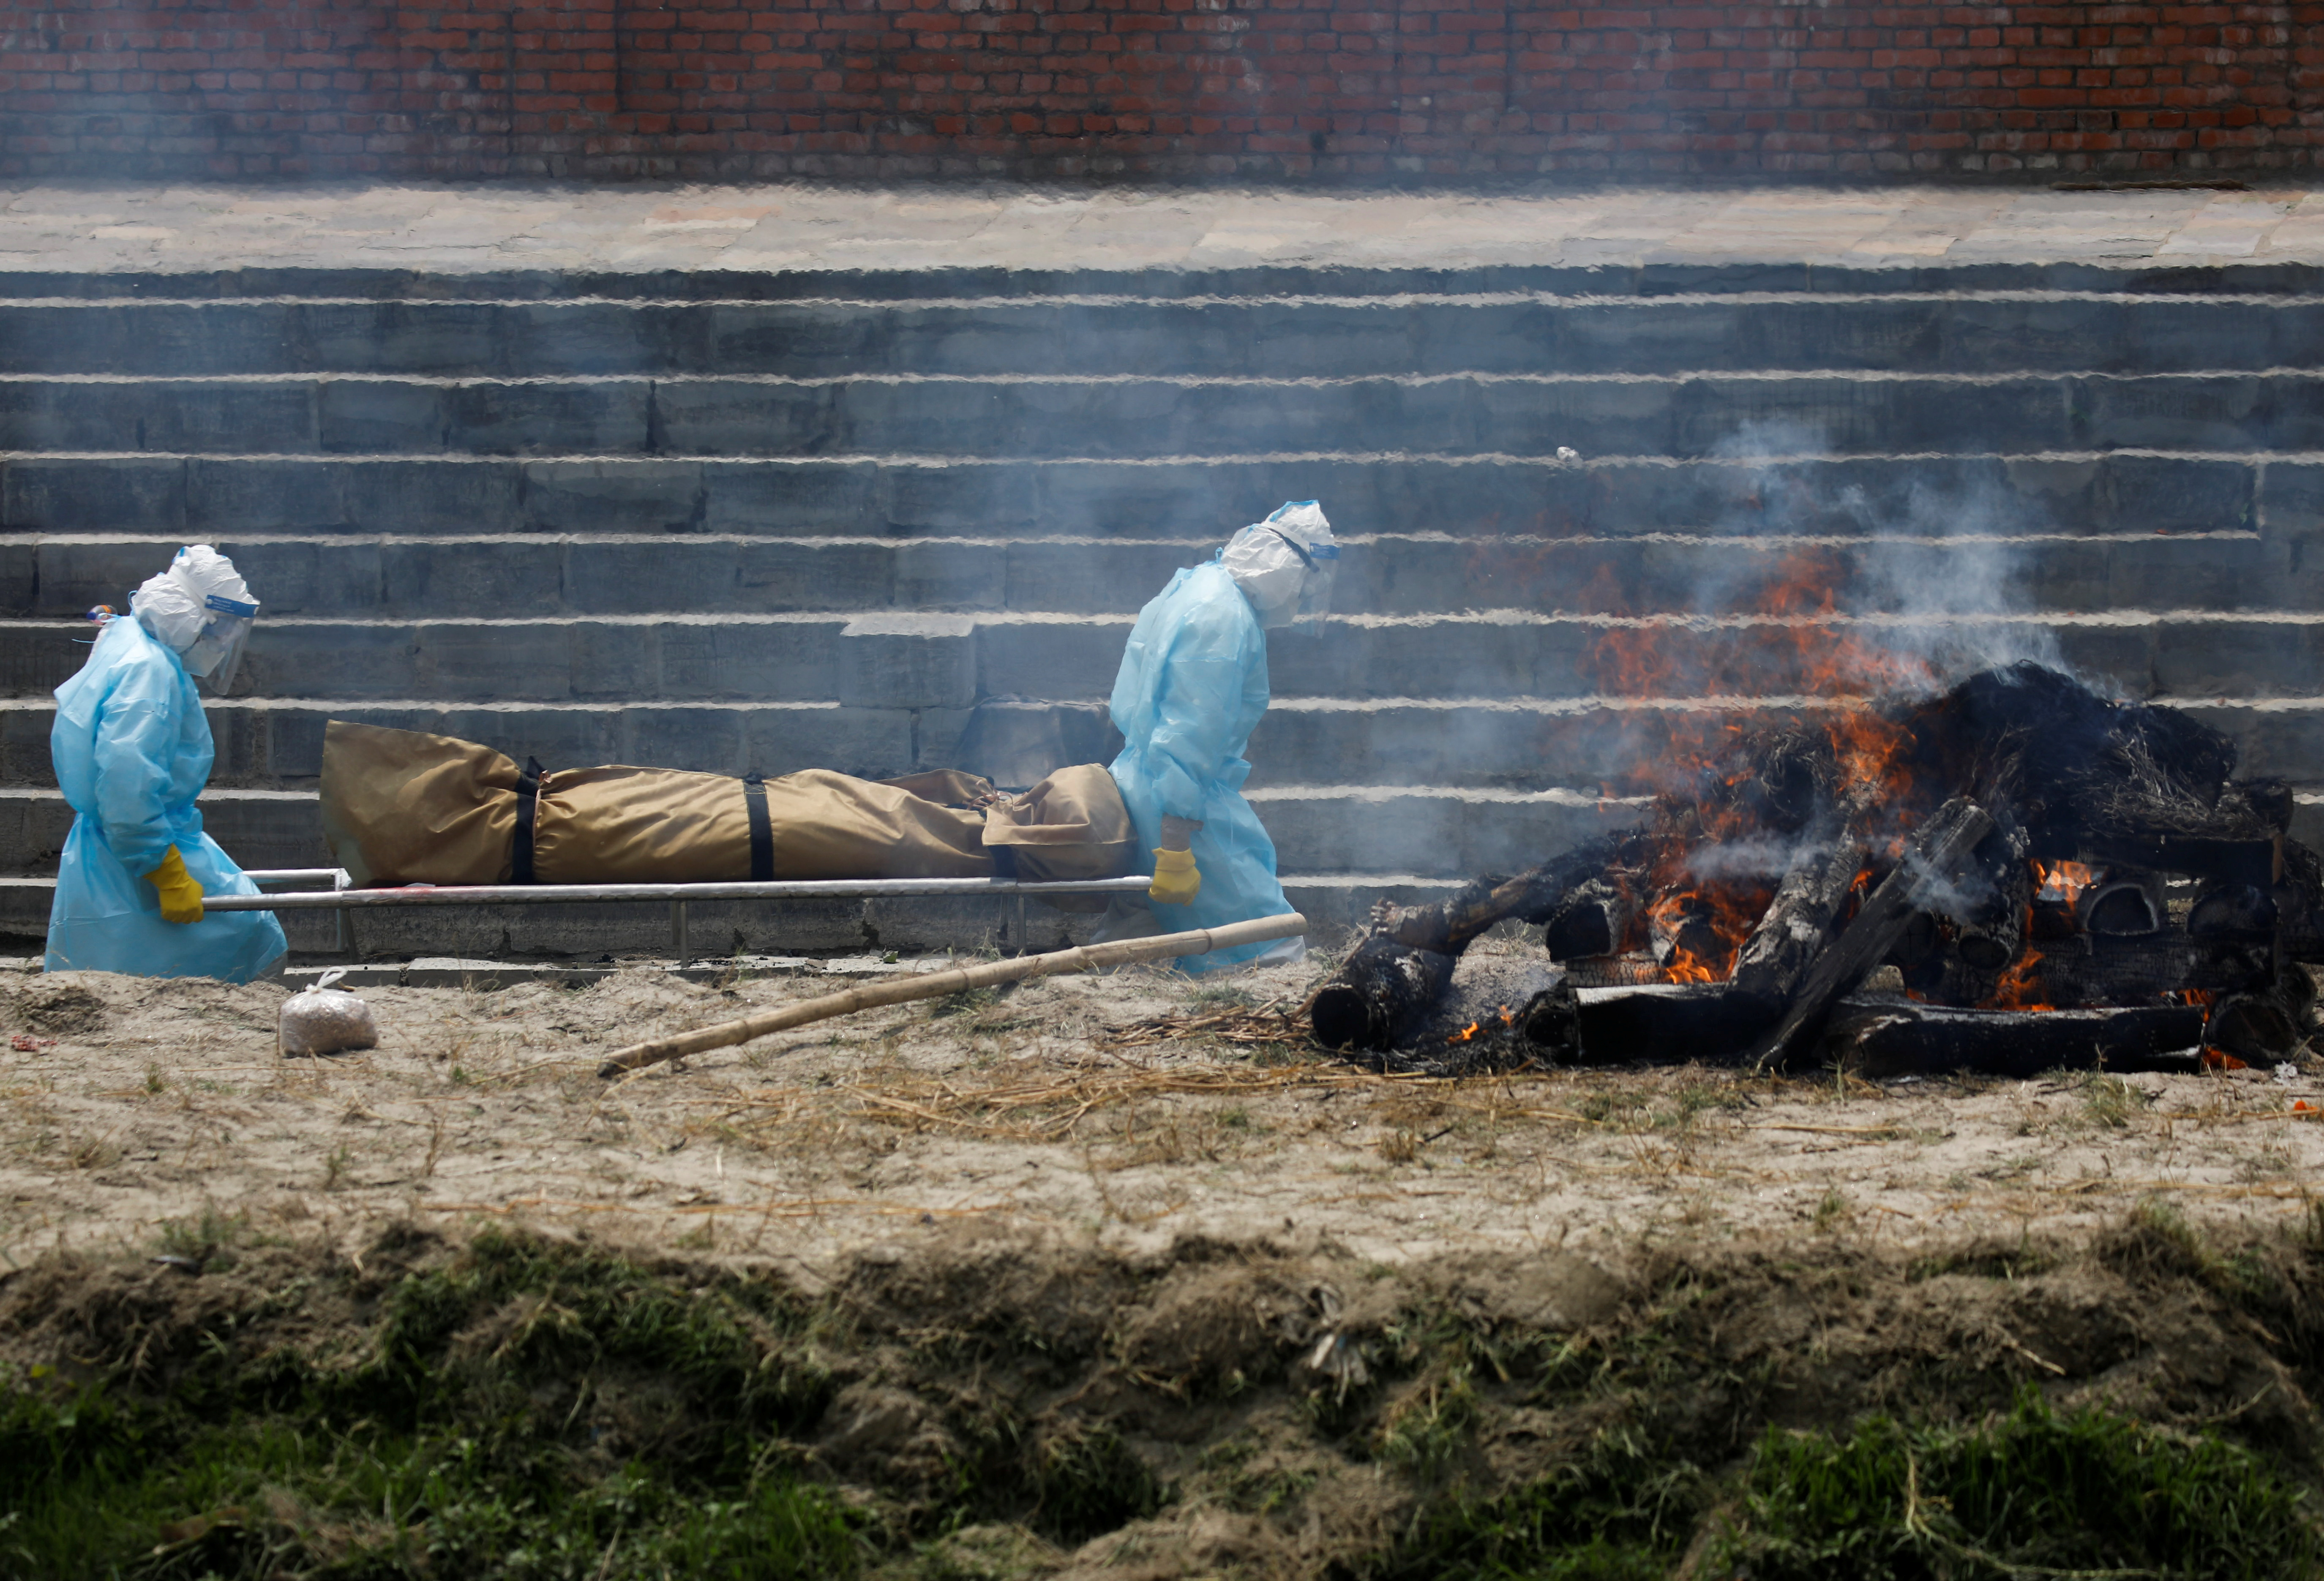 Men wearing personal protective equipment (PPE) carry the body of a COVID-19 victim for cremation on the bank of Bagmati River, as the number of deaths increases amid the spread of the coronavirus disease (COVID-19) in Kathmandu, Nepal May 3, 2021. REUTERS/Navesh Chitrakar